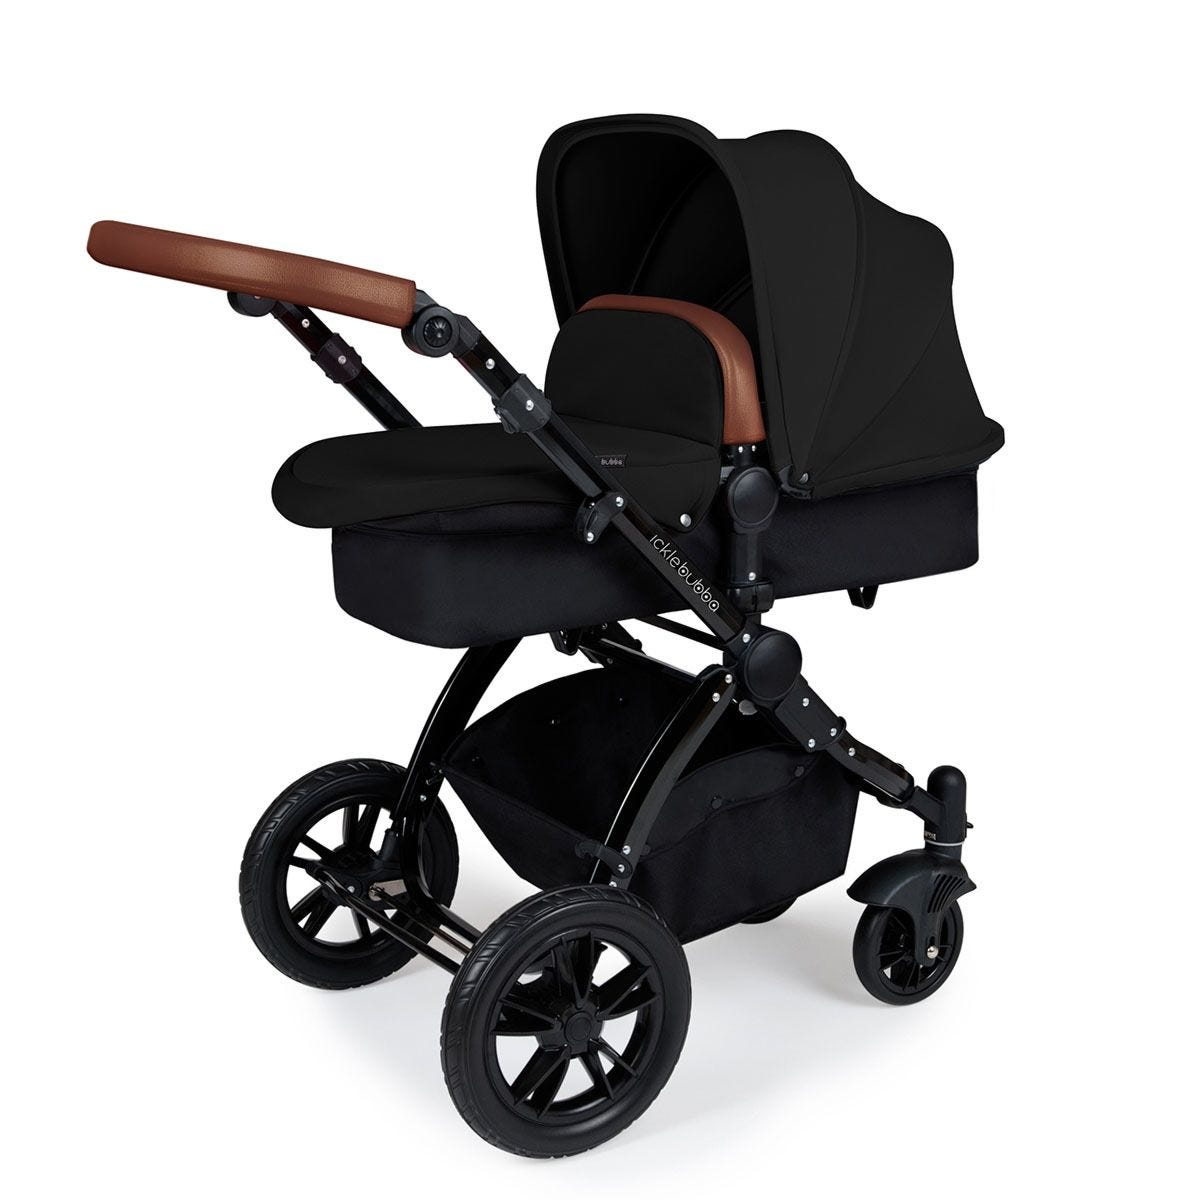 Ickle Bubba Stomp V3 2 in 1 Pushchair - Black on Black with Tan Handles